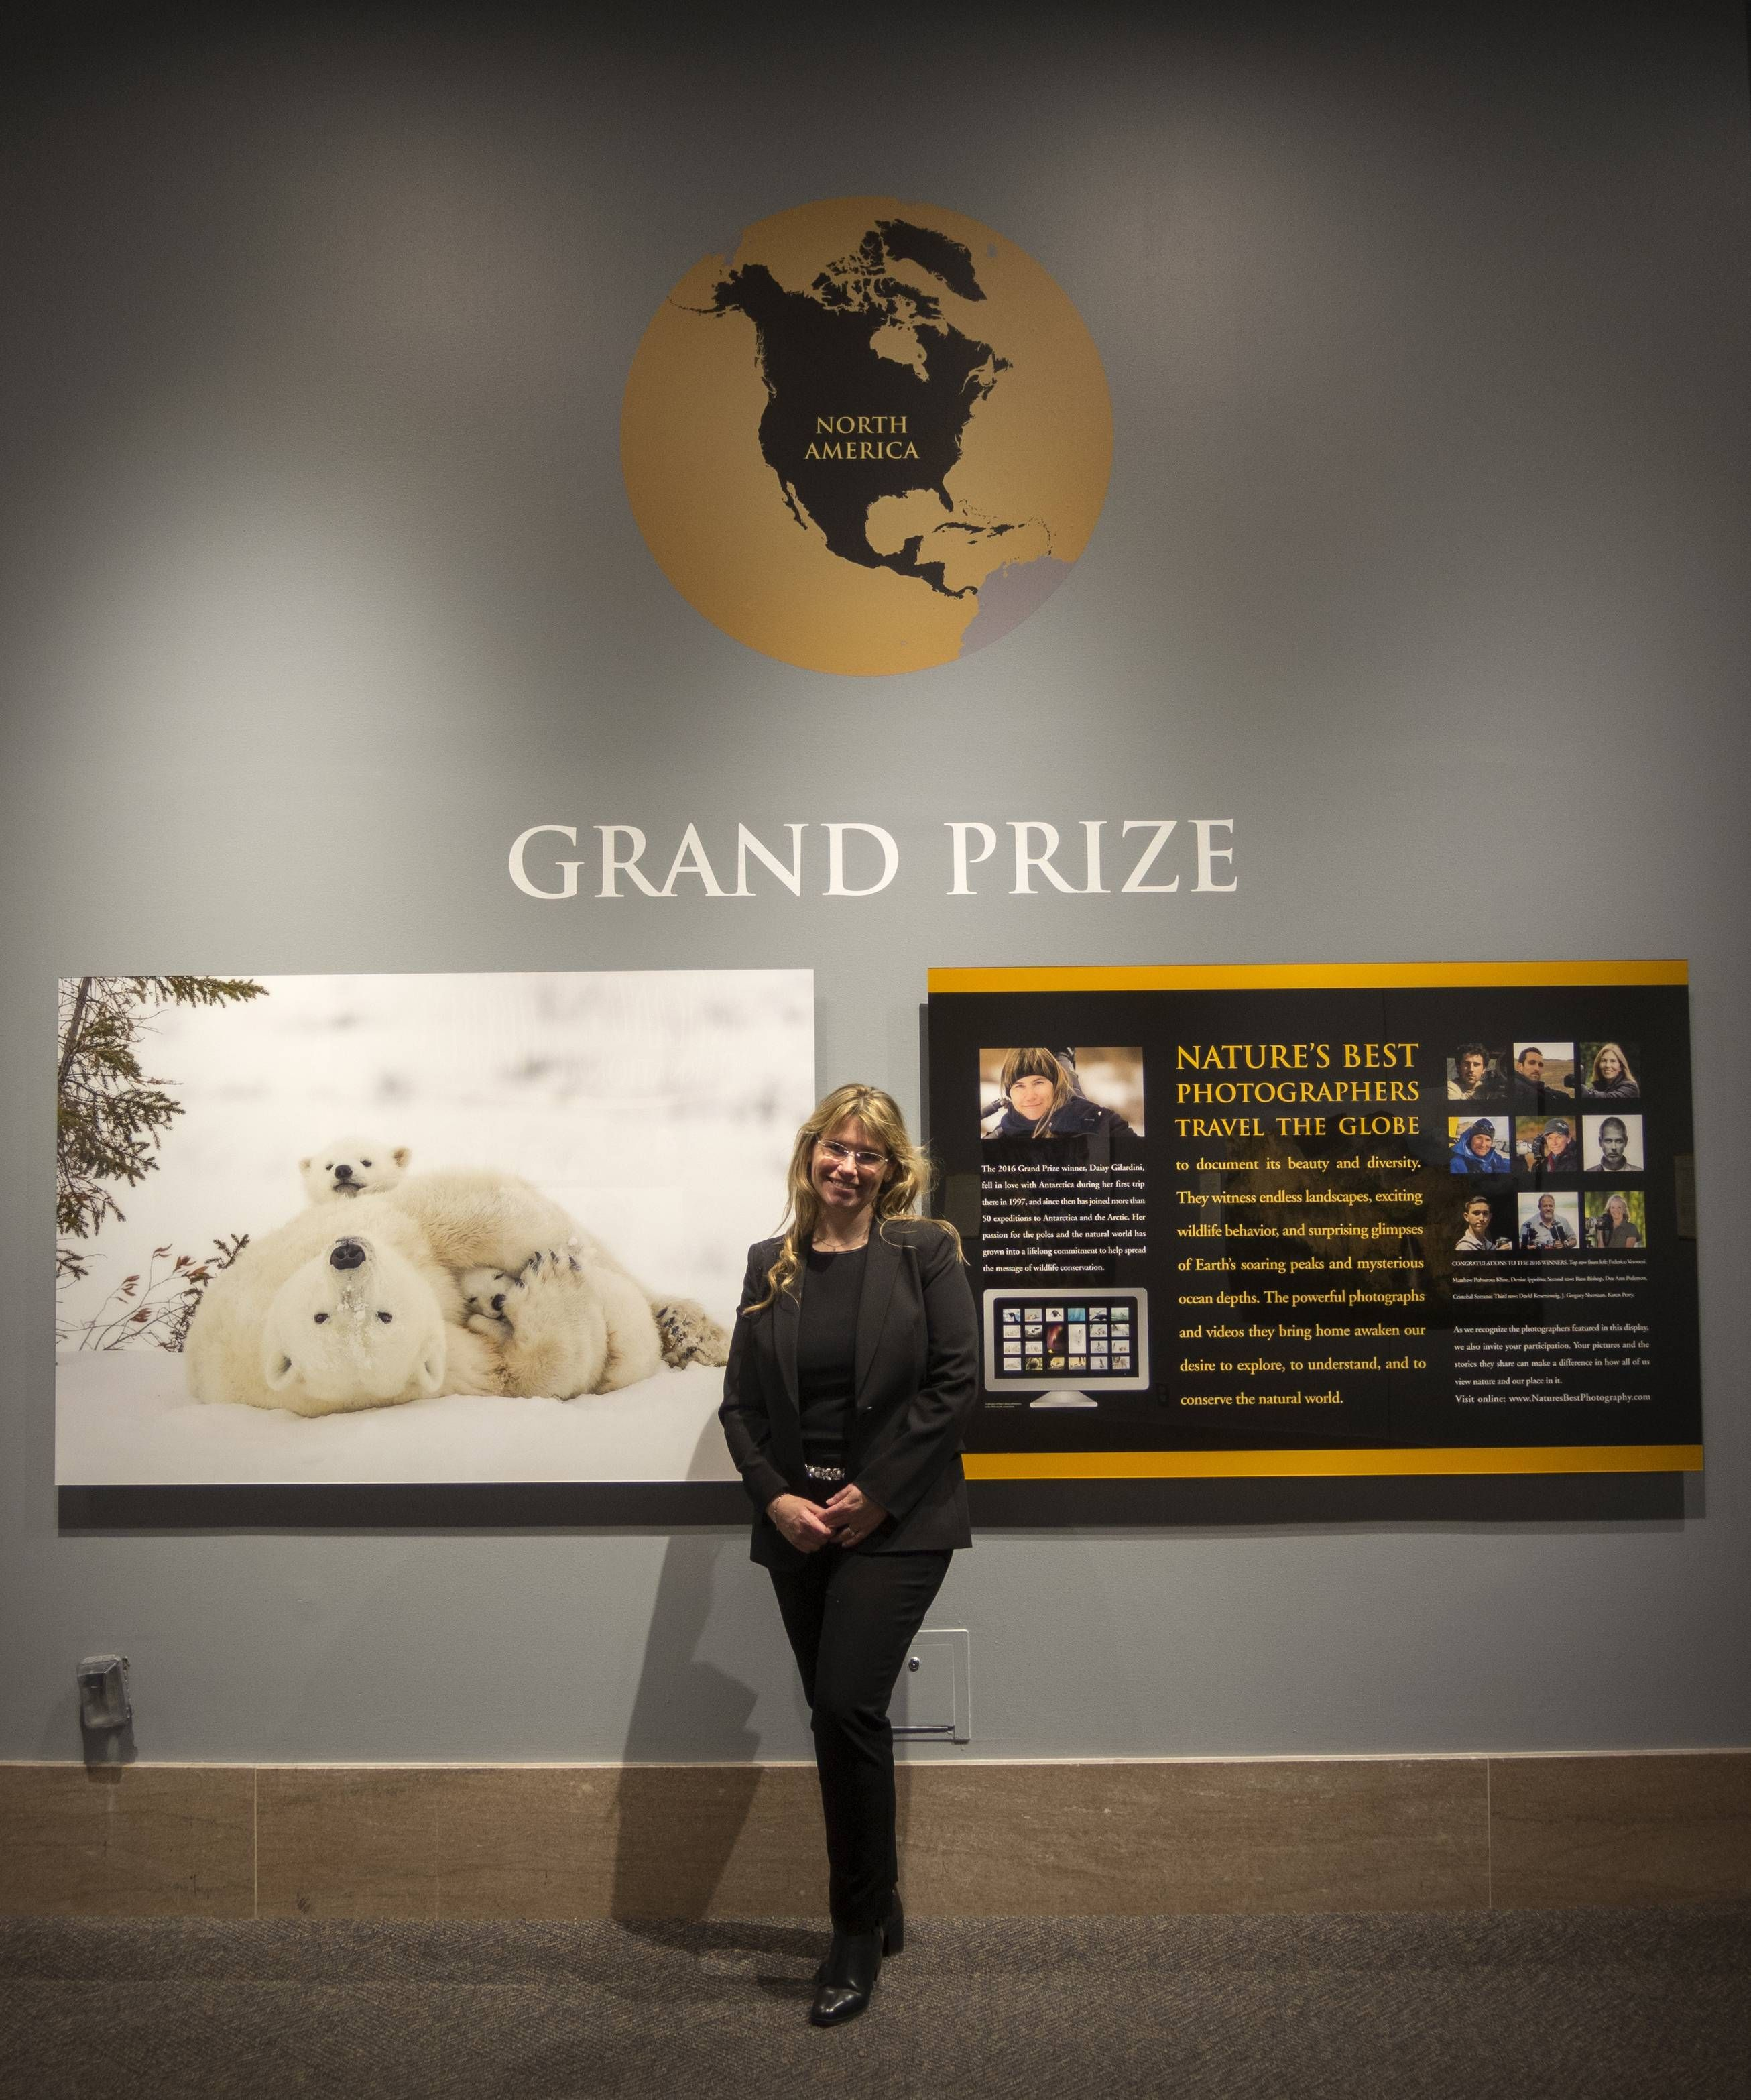 Manitoba Polar Bear Picture Wins Grand Prize Lands Spot In Masker An Adorable Of A Cuddling Her Cubs Is Making Debut At The One Largest Museums World